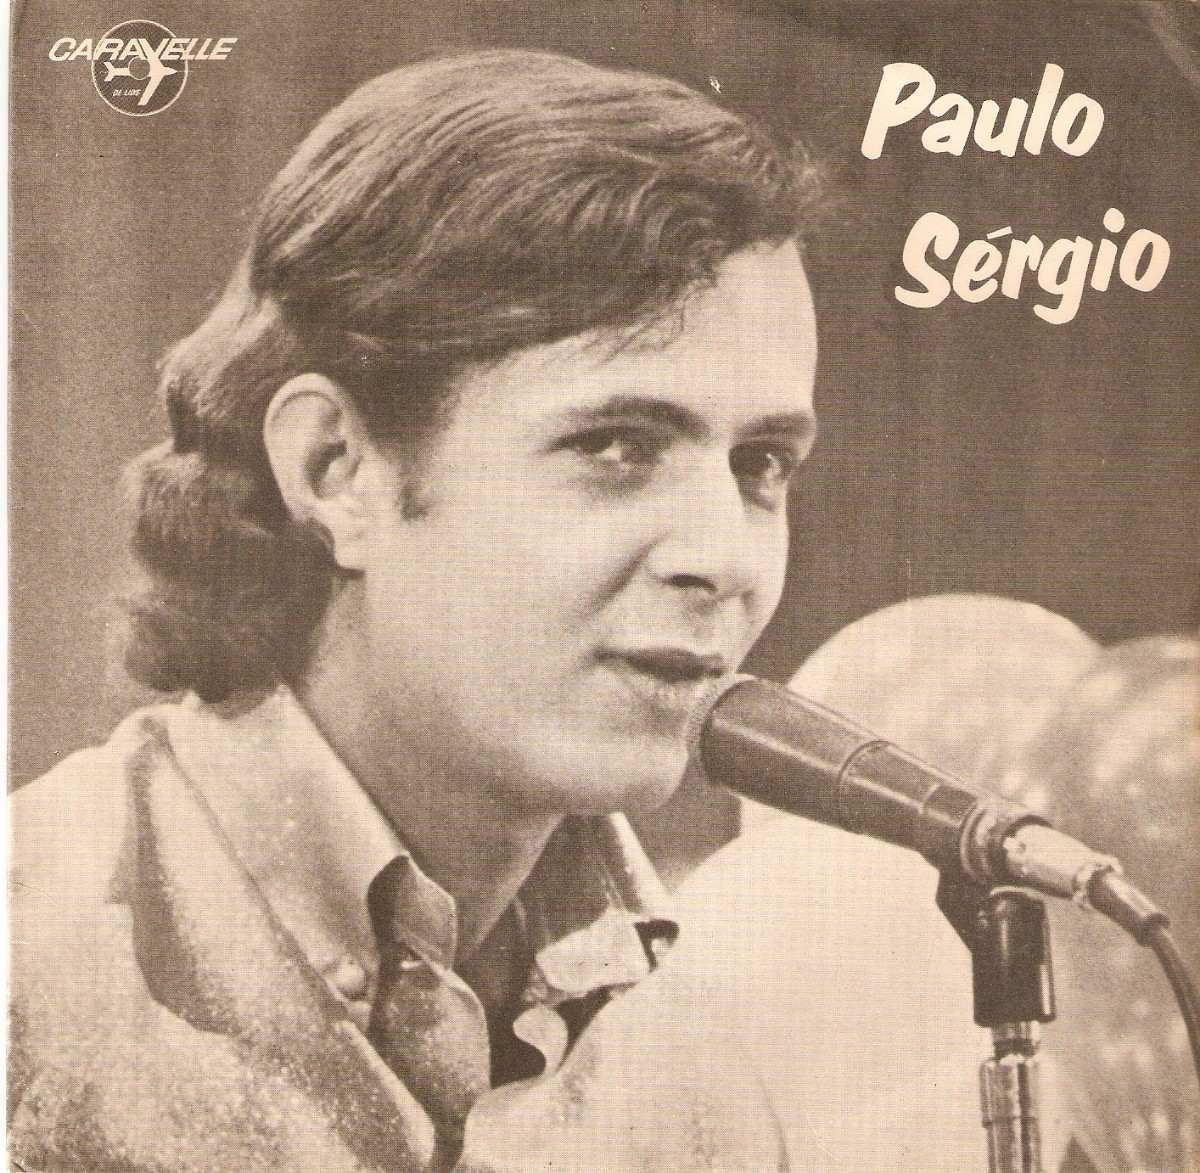 Paulo Sergio, a struggling young singer from Espirito Santo who recorded for Caravelle a small label in Rio de Janeiro suddenly becomes pop music's new ... - paulo-sergio-ultima-canco-compacto-simples-vinil_MLB-F-4202258415_042013